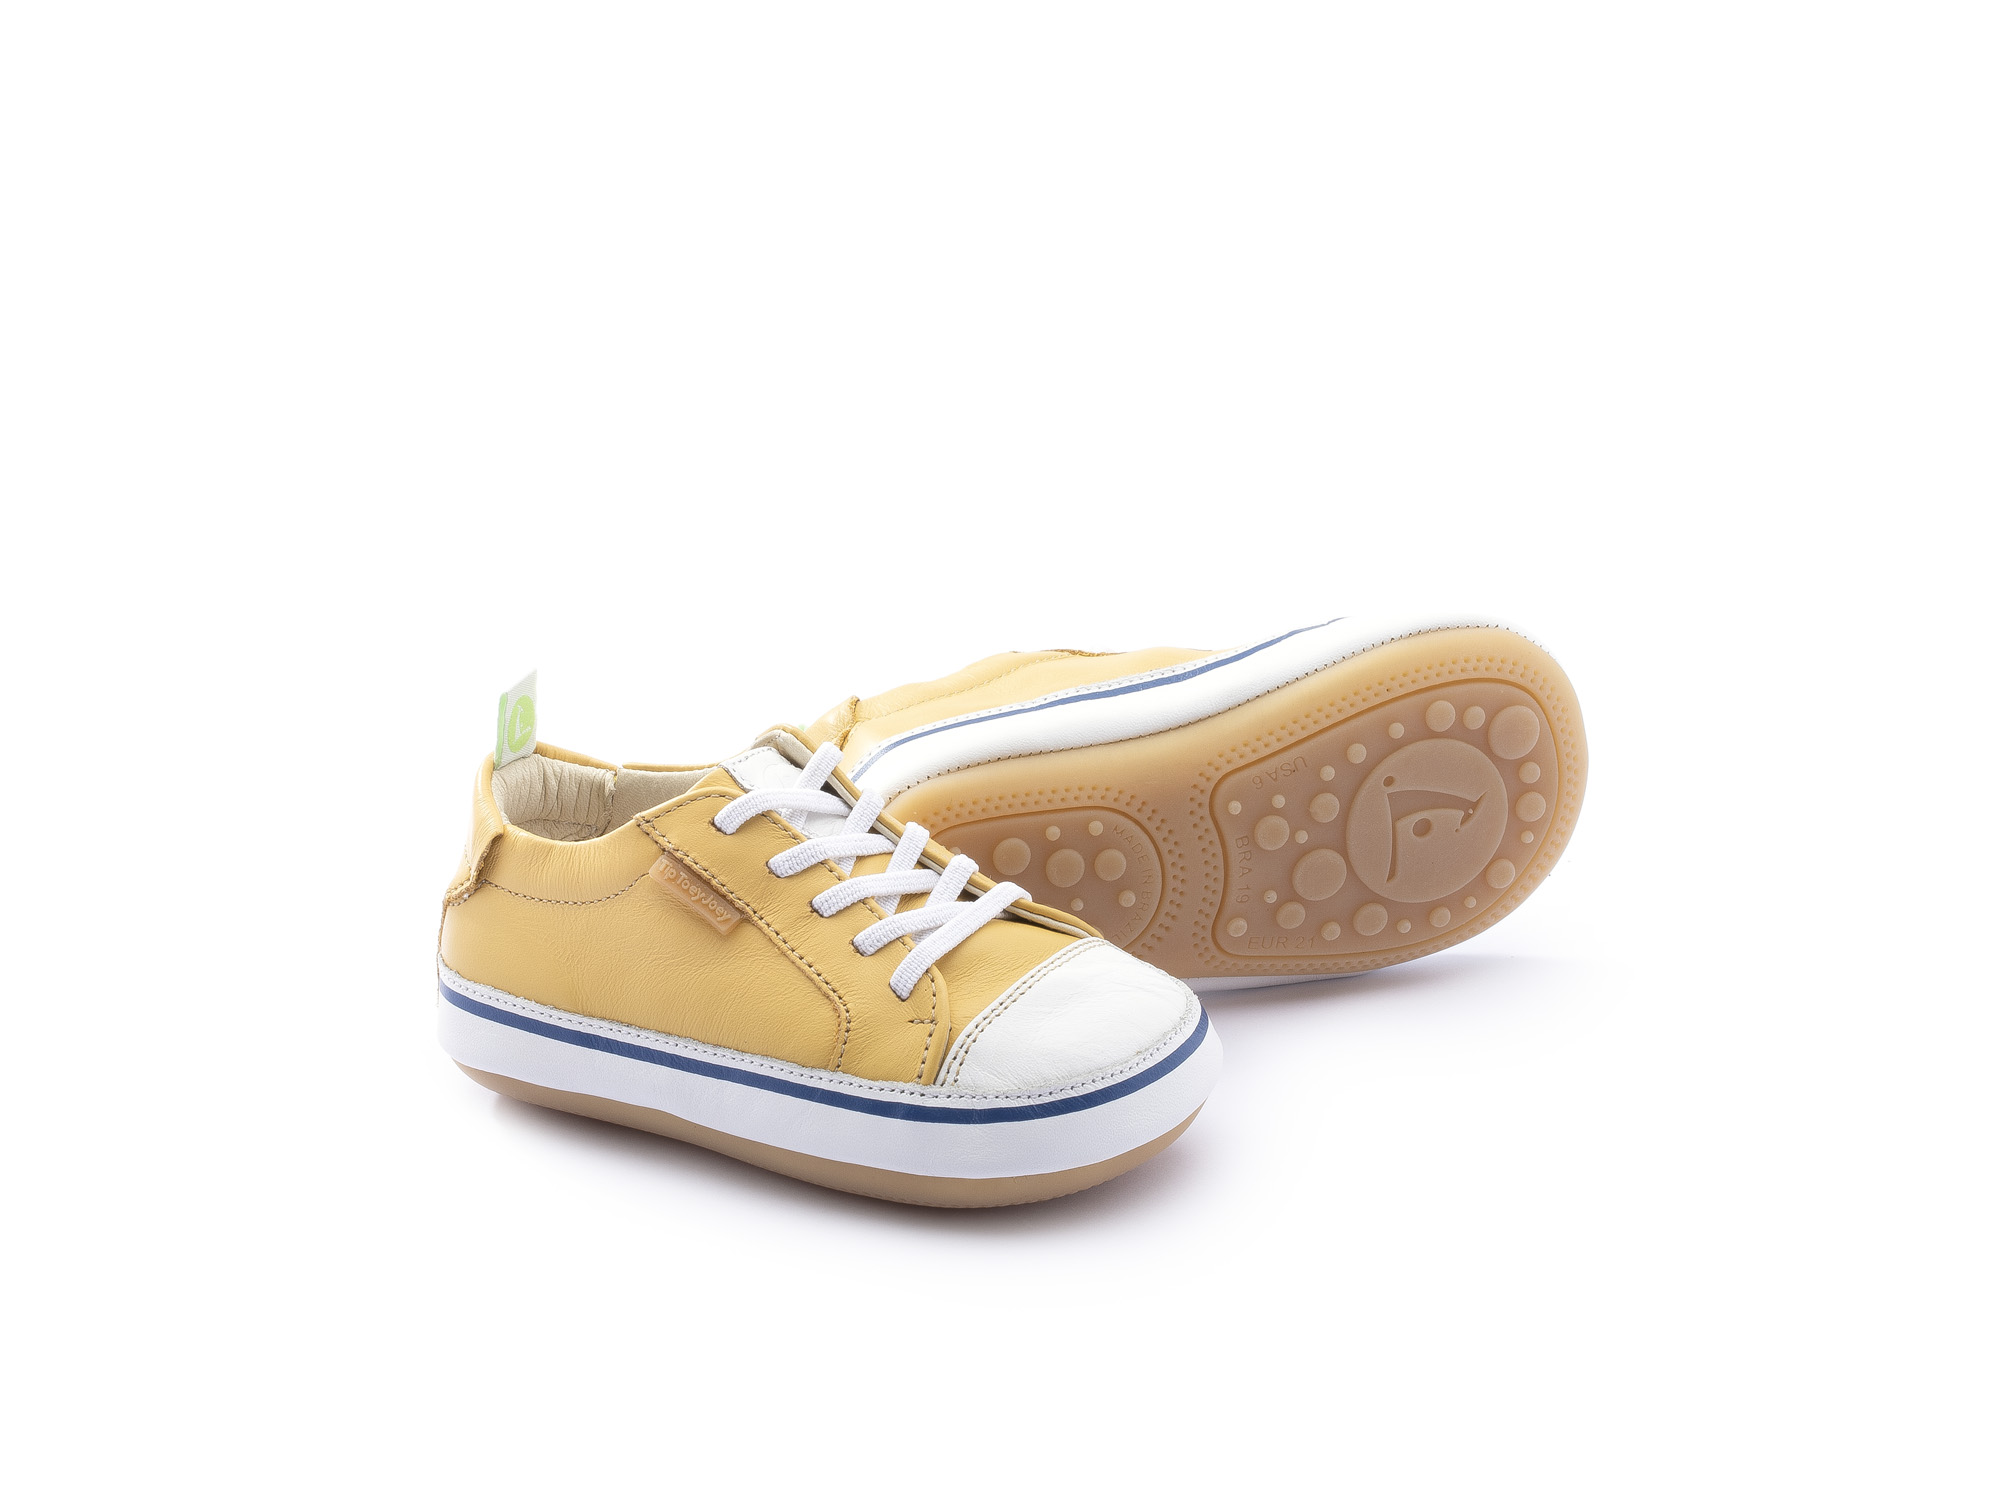 Sneaker Casual Funky Pequi/ White Baby 0 à 2 anos - 0